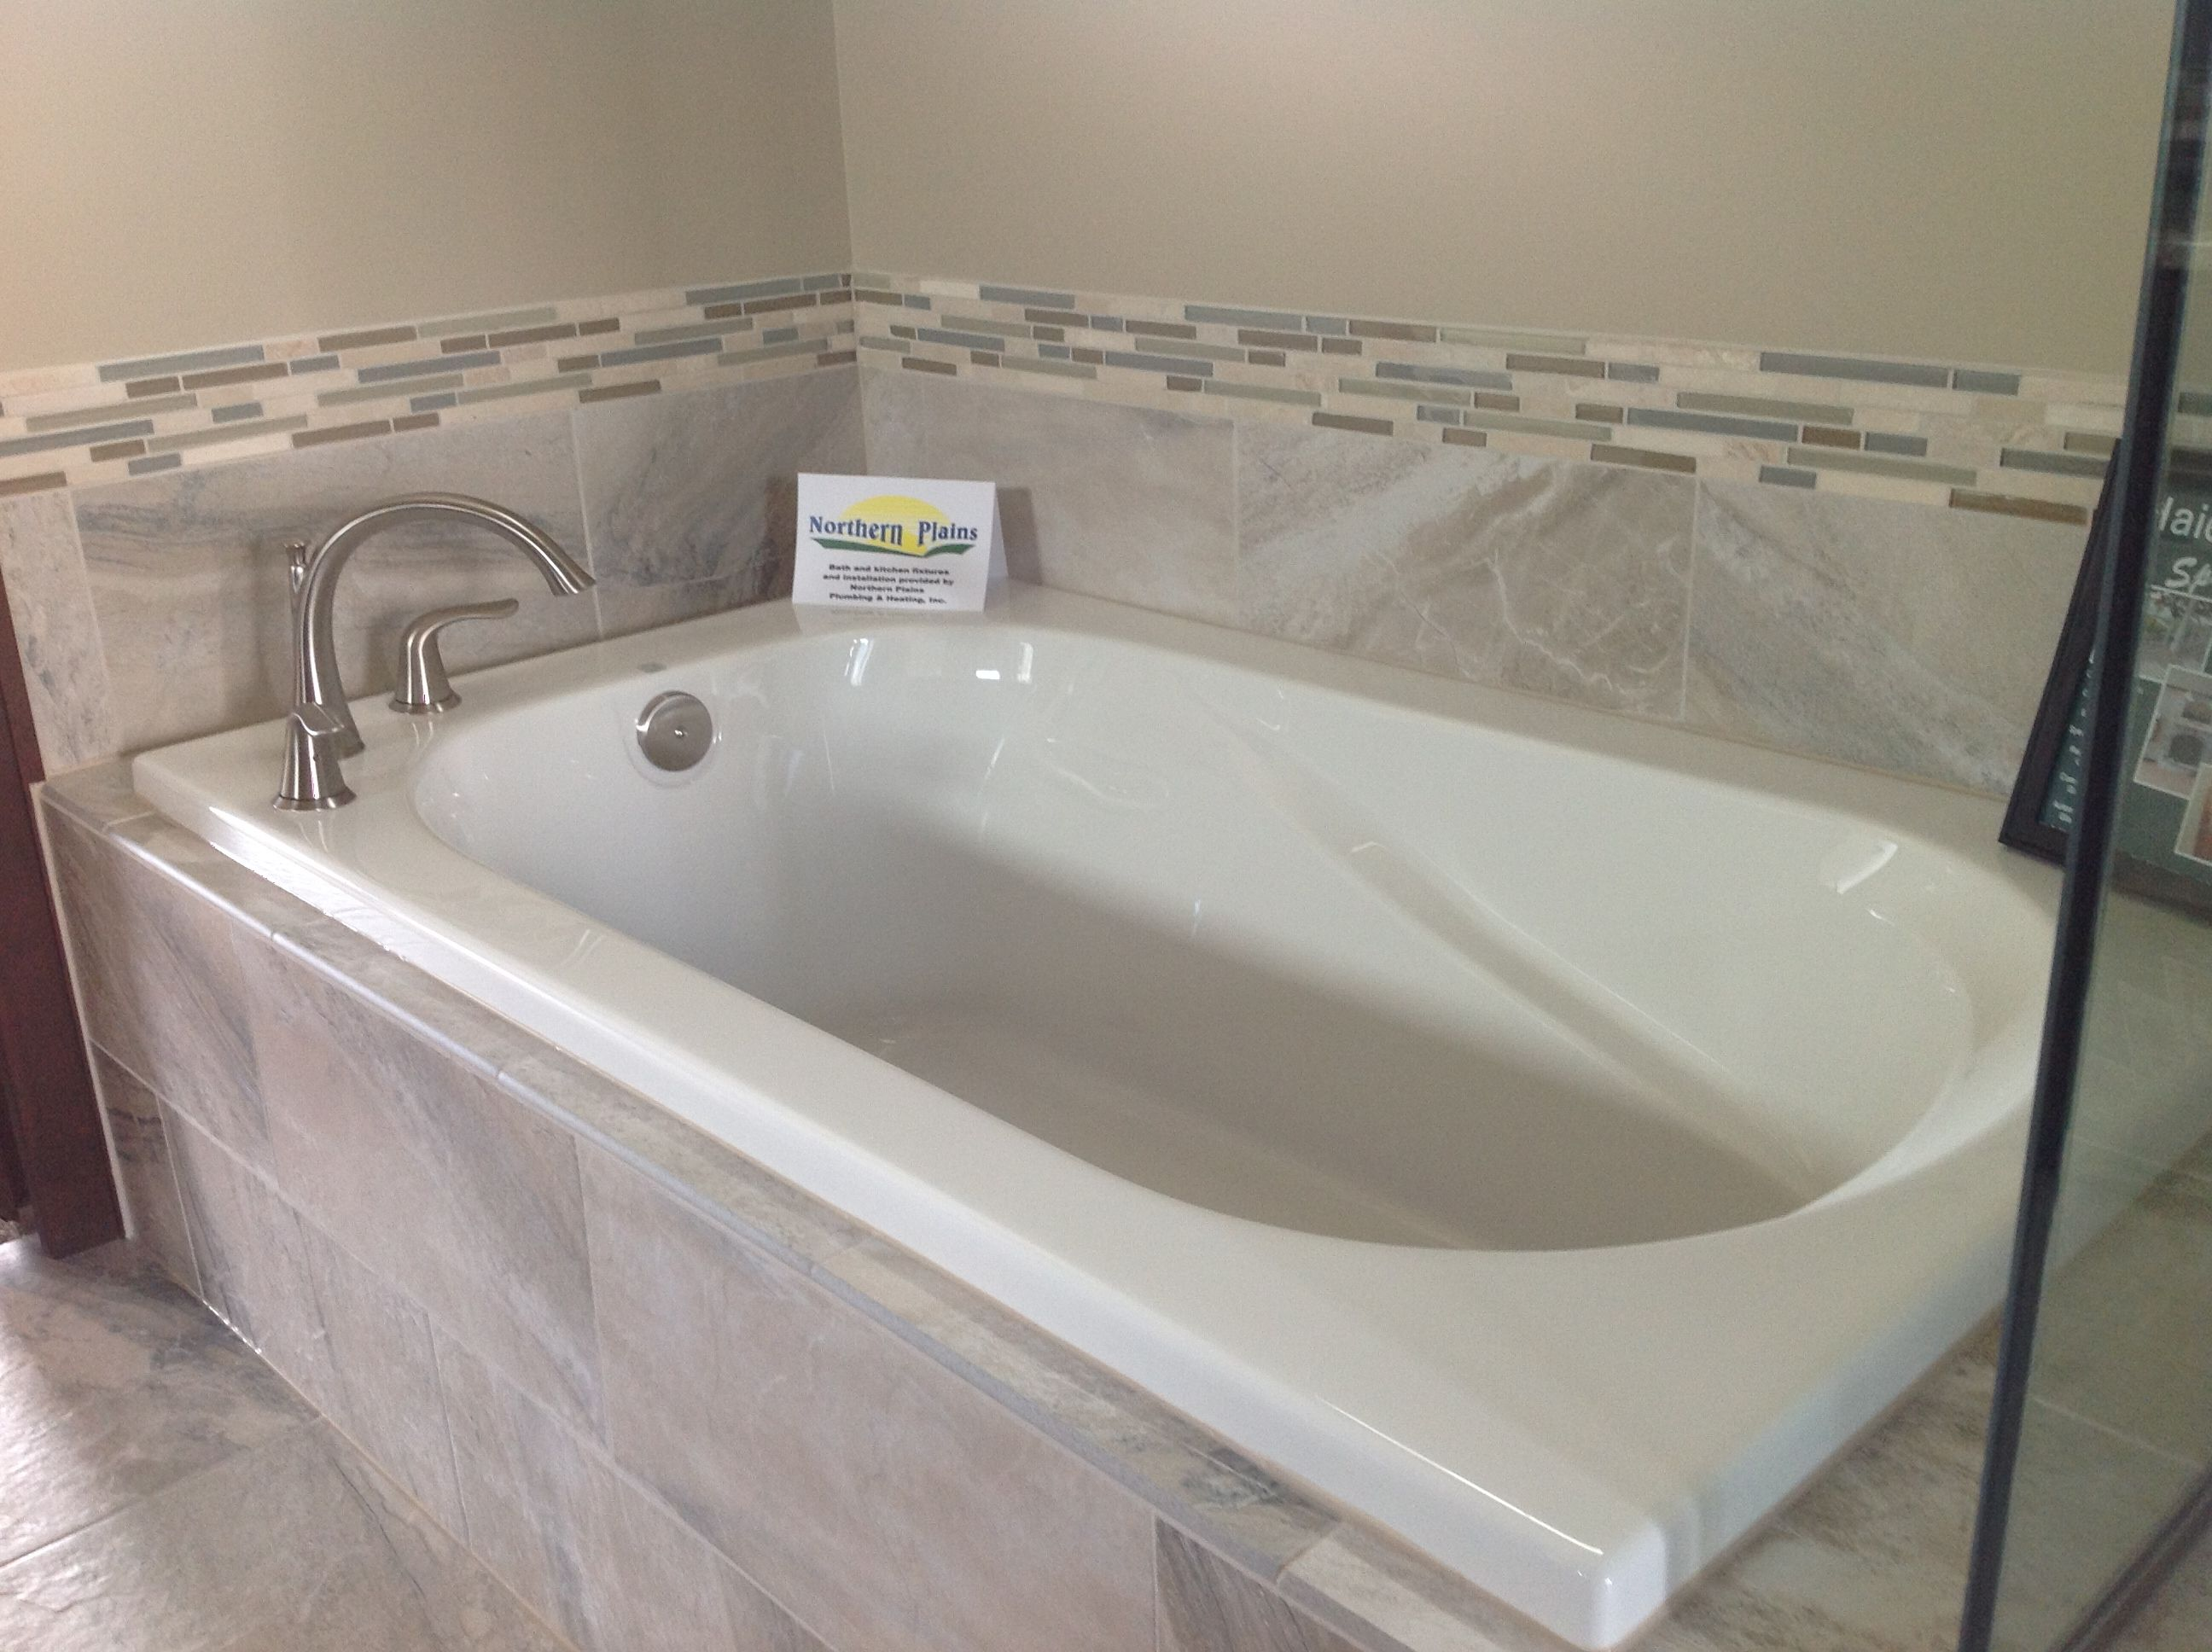 Drop In Tub With Gray Tile Coastal Crap Bathtub Tile Tile Tub Surround Drop In Bathtub